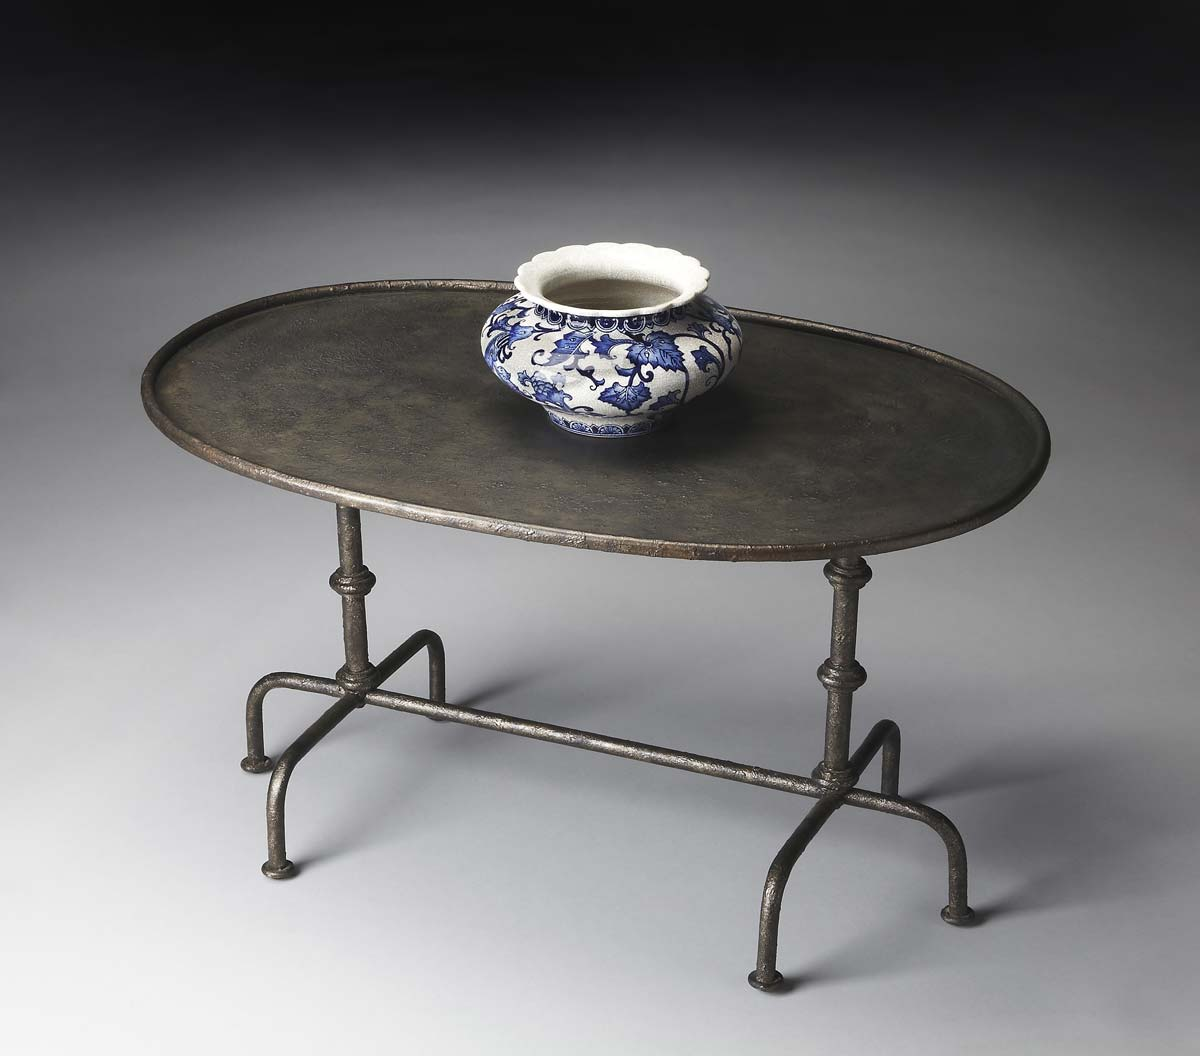 Butler 1224025 Cocktail Table - Metalworks